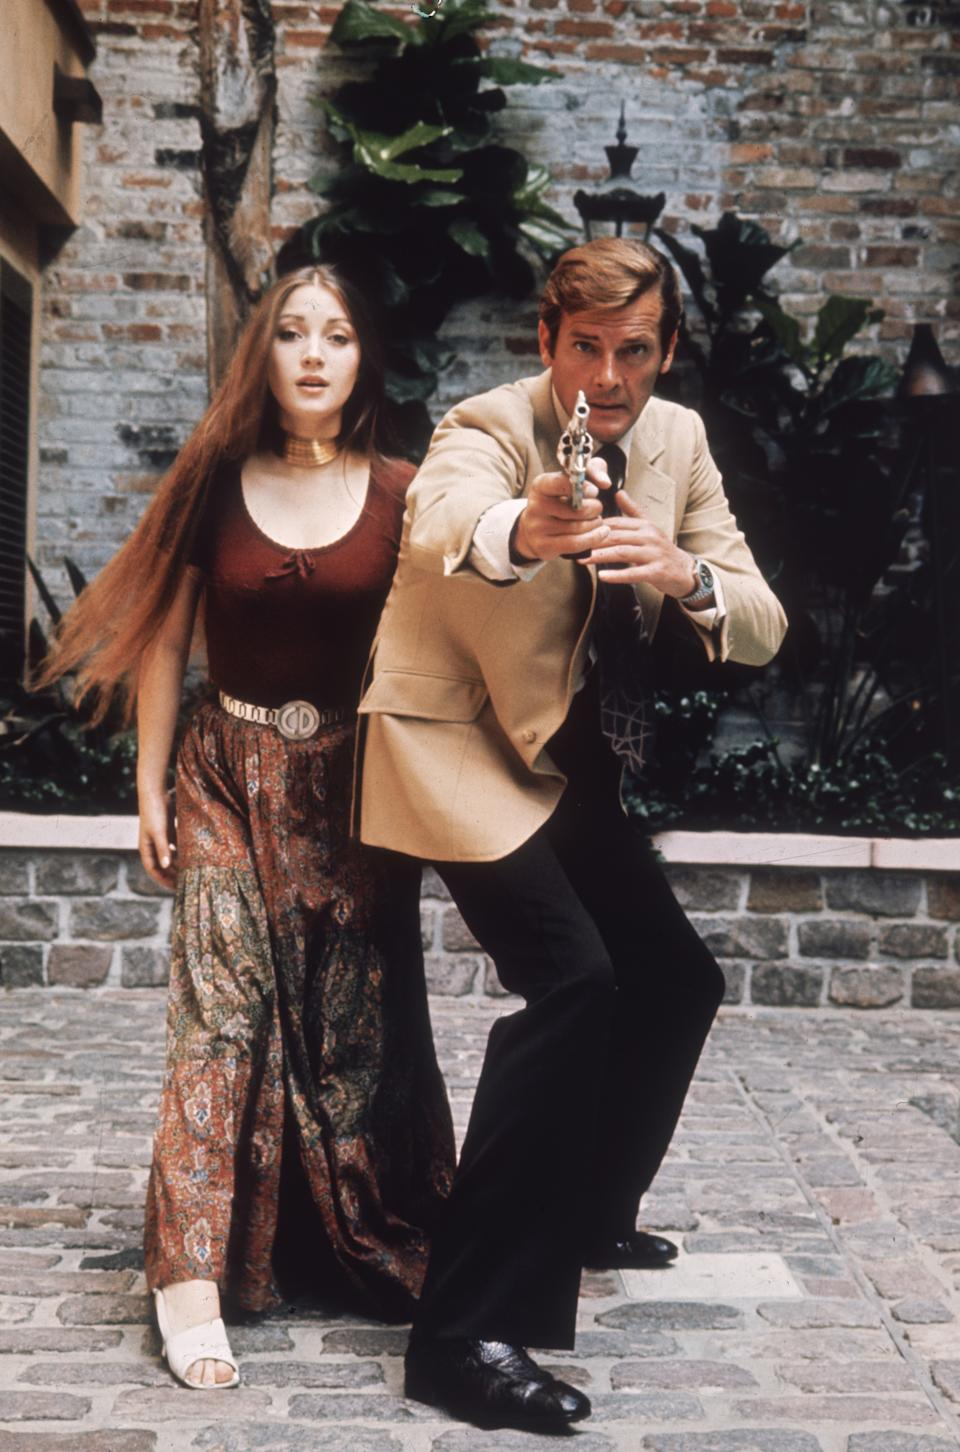 1973: Jane Seymour plays the clairvoyant Solitaire to Roger Moore's 007 in the James Bond film 'Live and Let Die', directed by Guy Hamilton.  (Photo by Keystone/Getty Images)